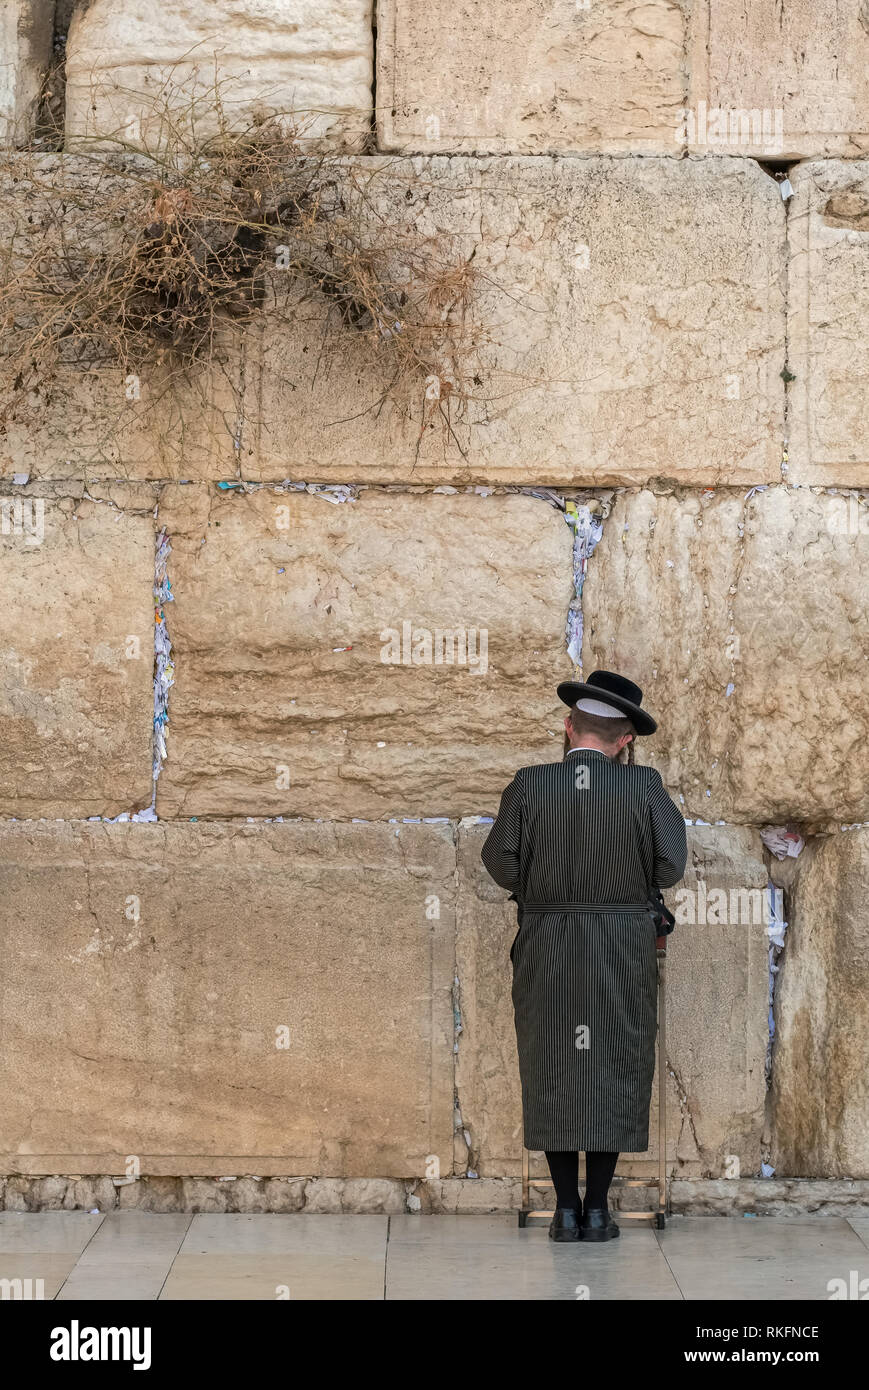 Religious orthodox jew praying at the Western wall in Jerusalem - Stock Image